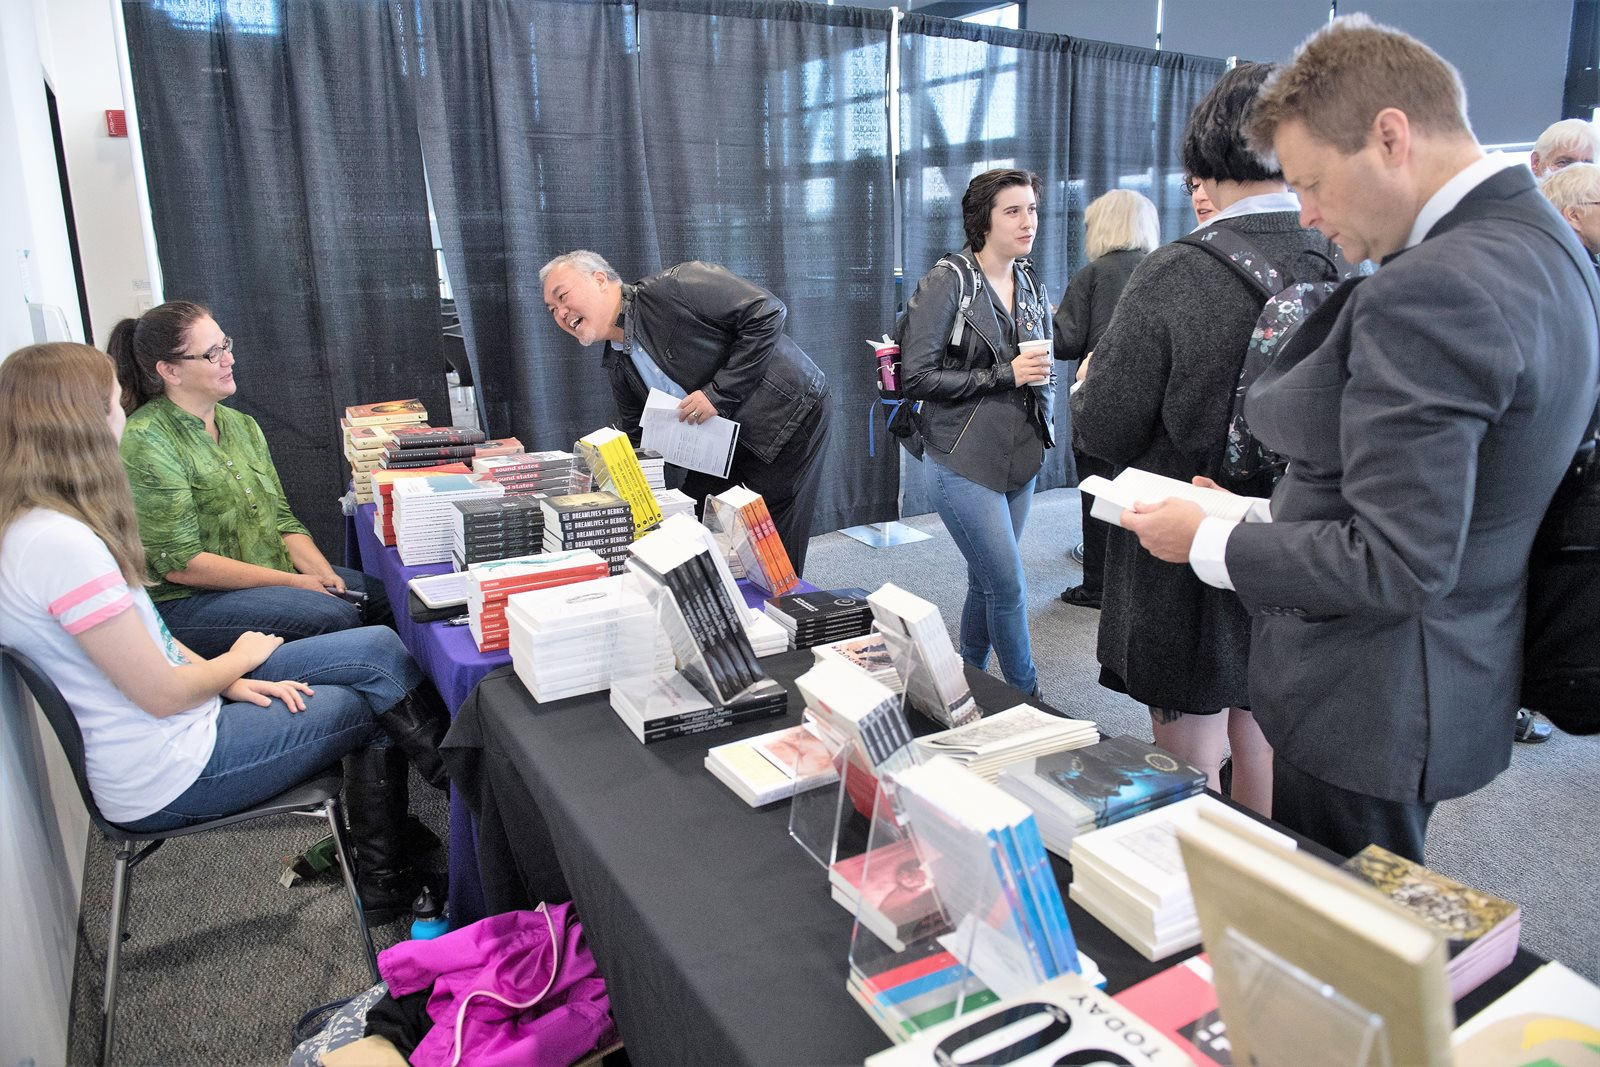 Bookselling at 2017 convergence